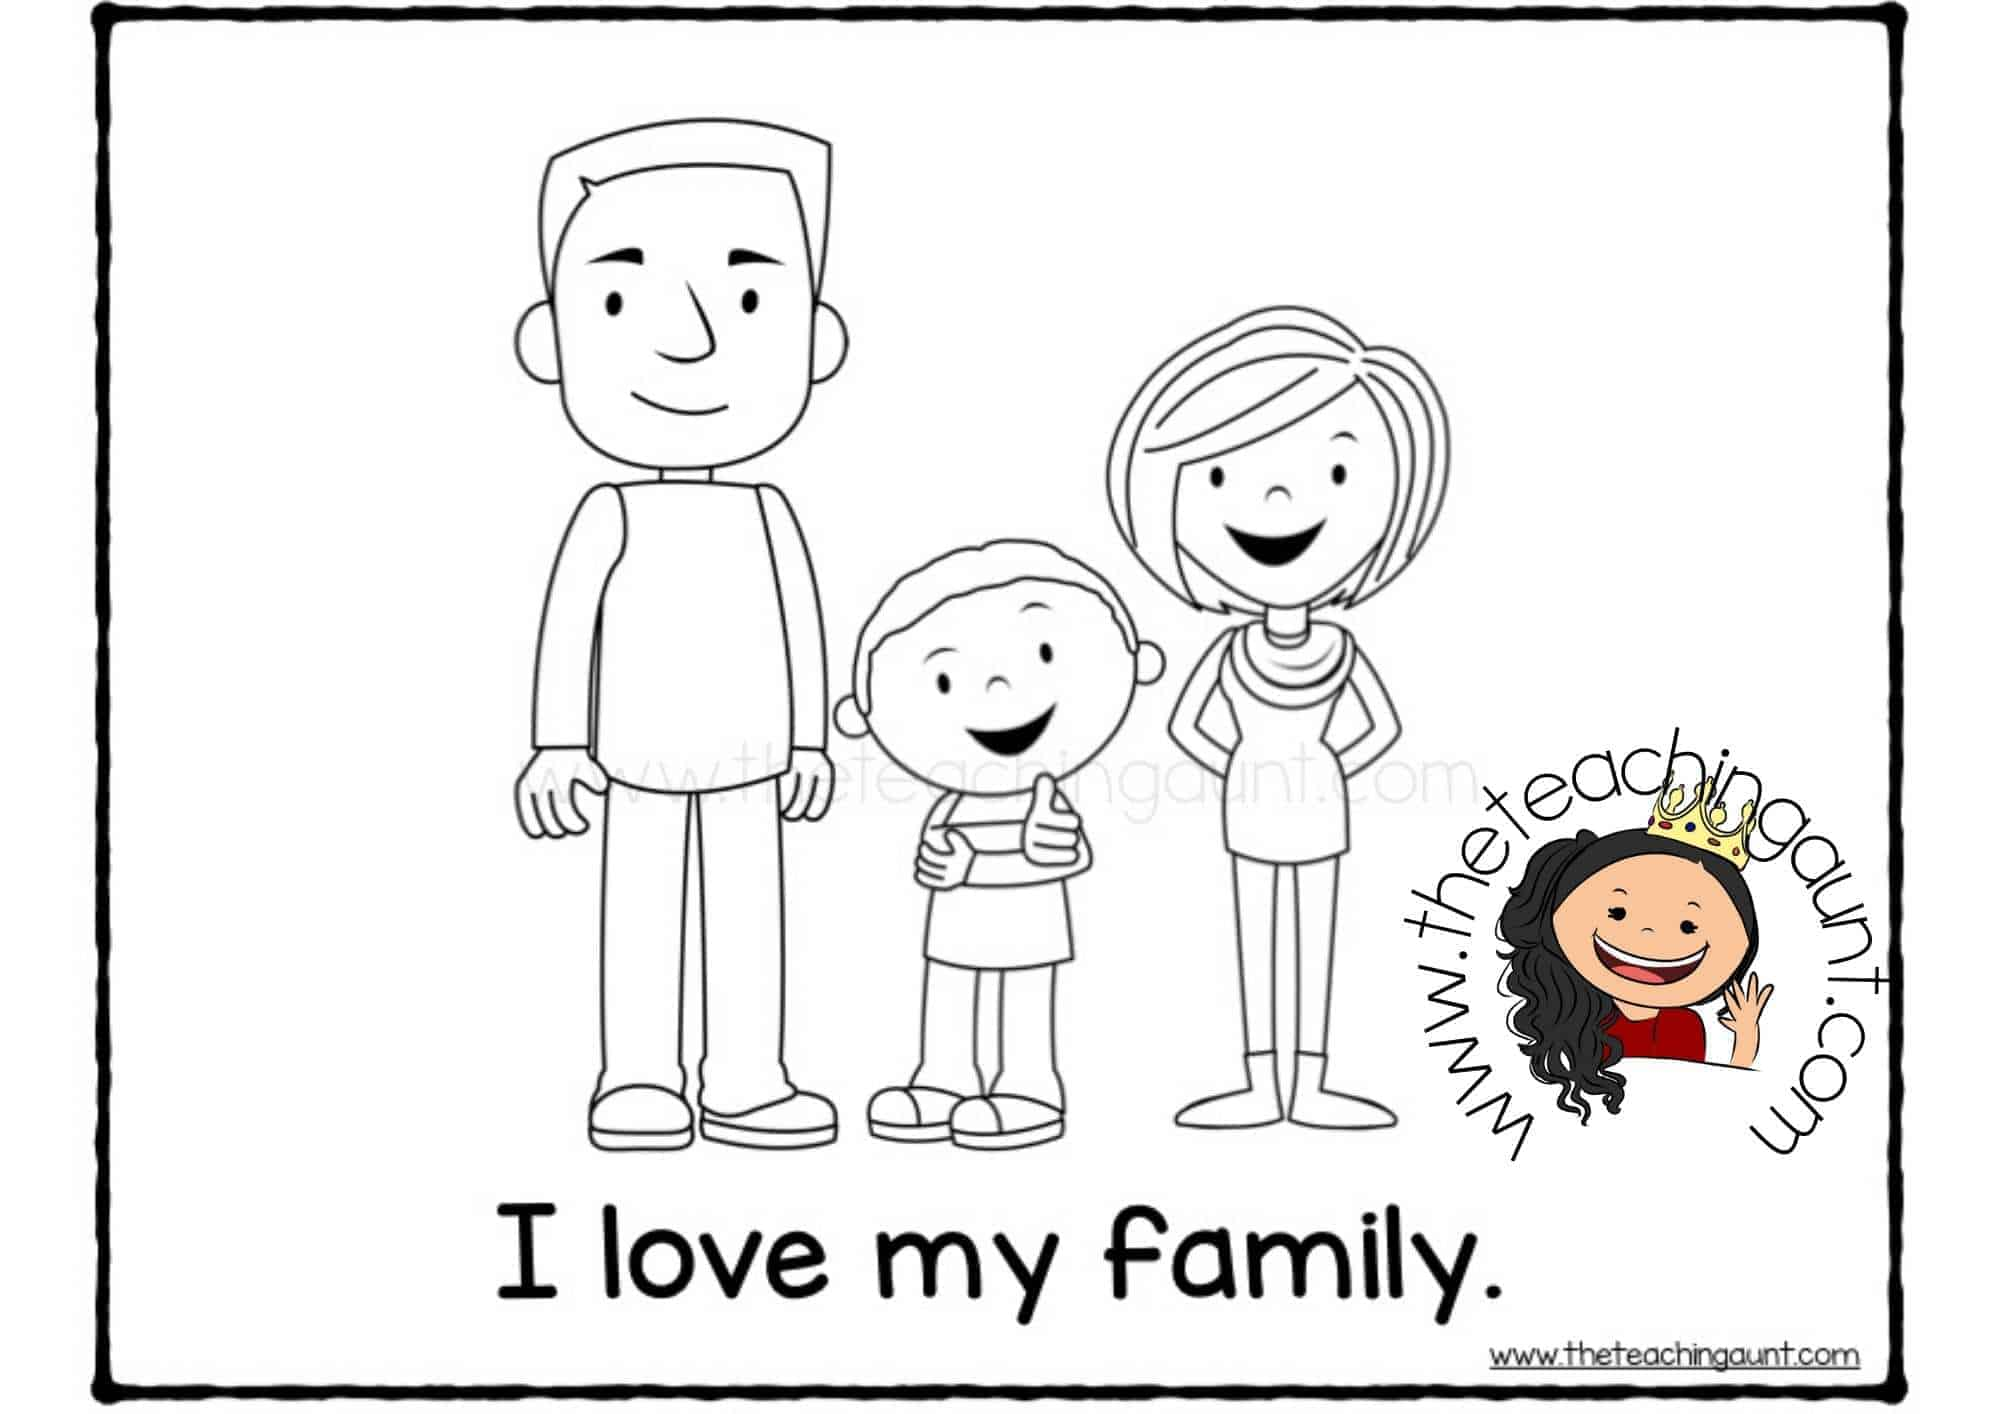 Free Family Members Coloring Pages- I love my family with son